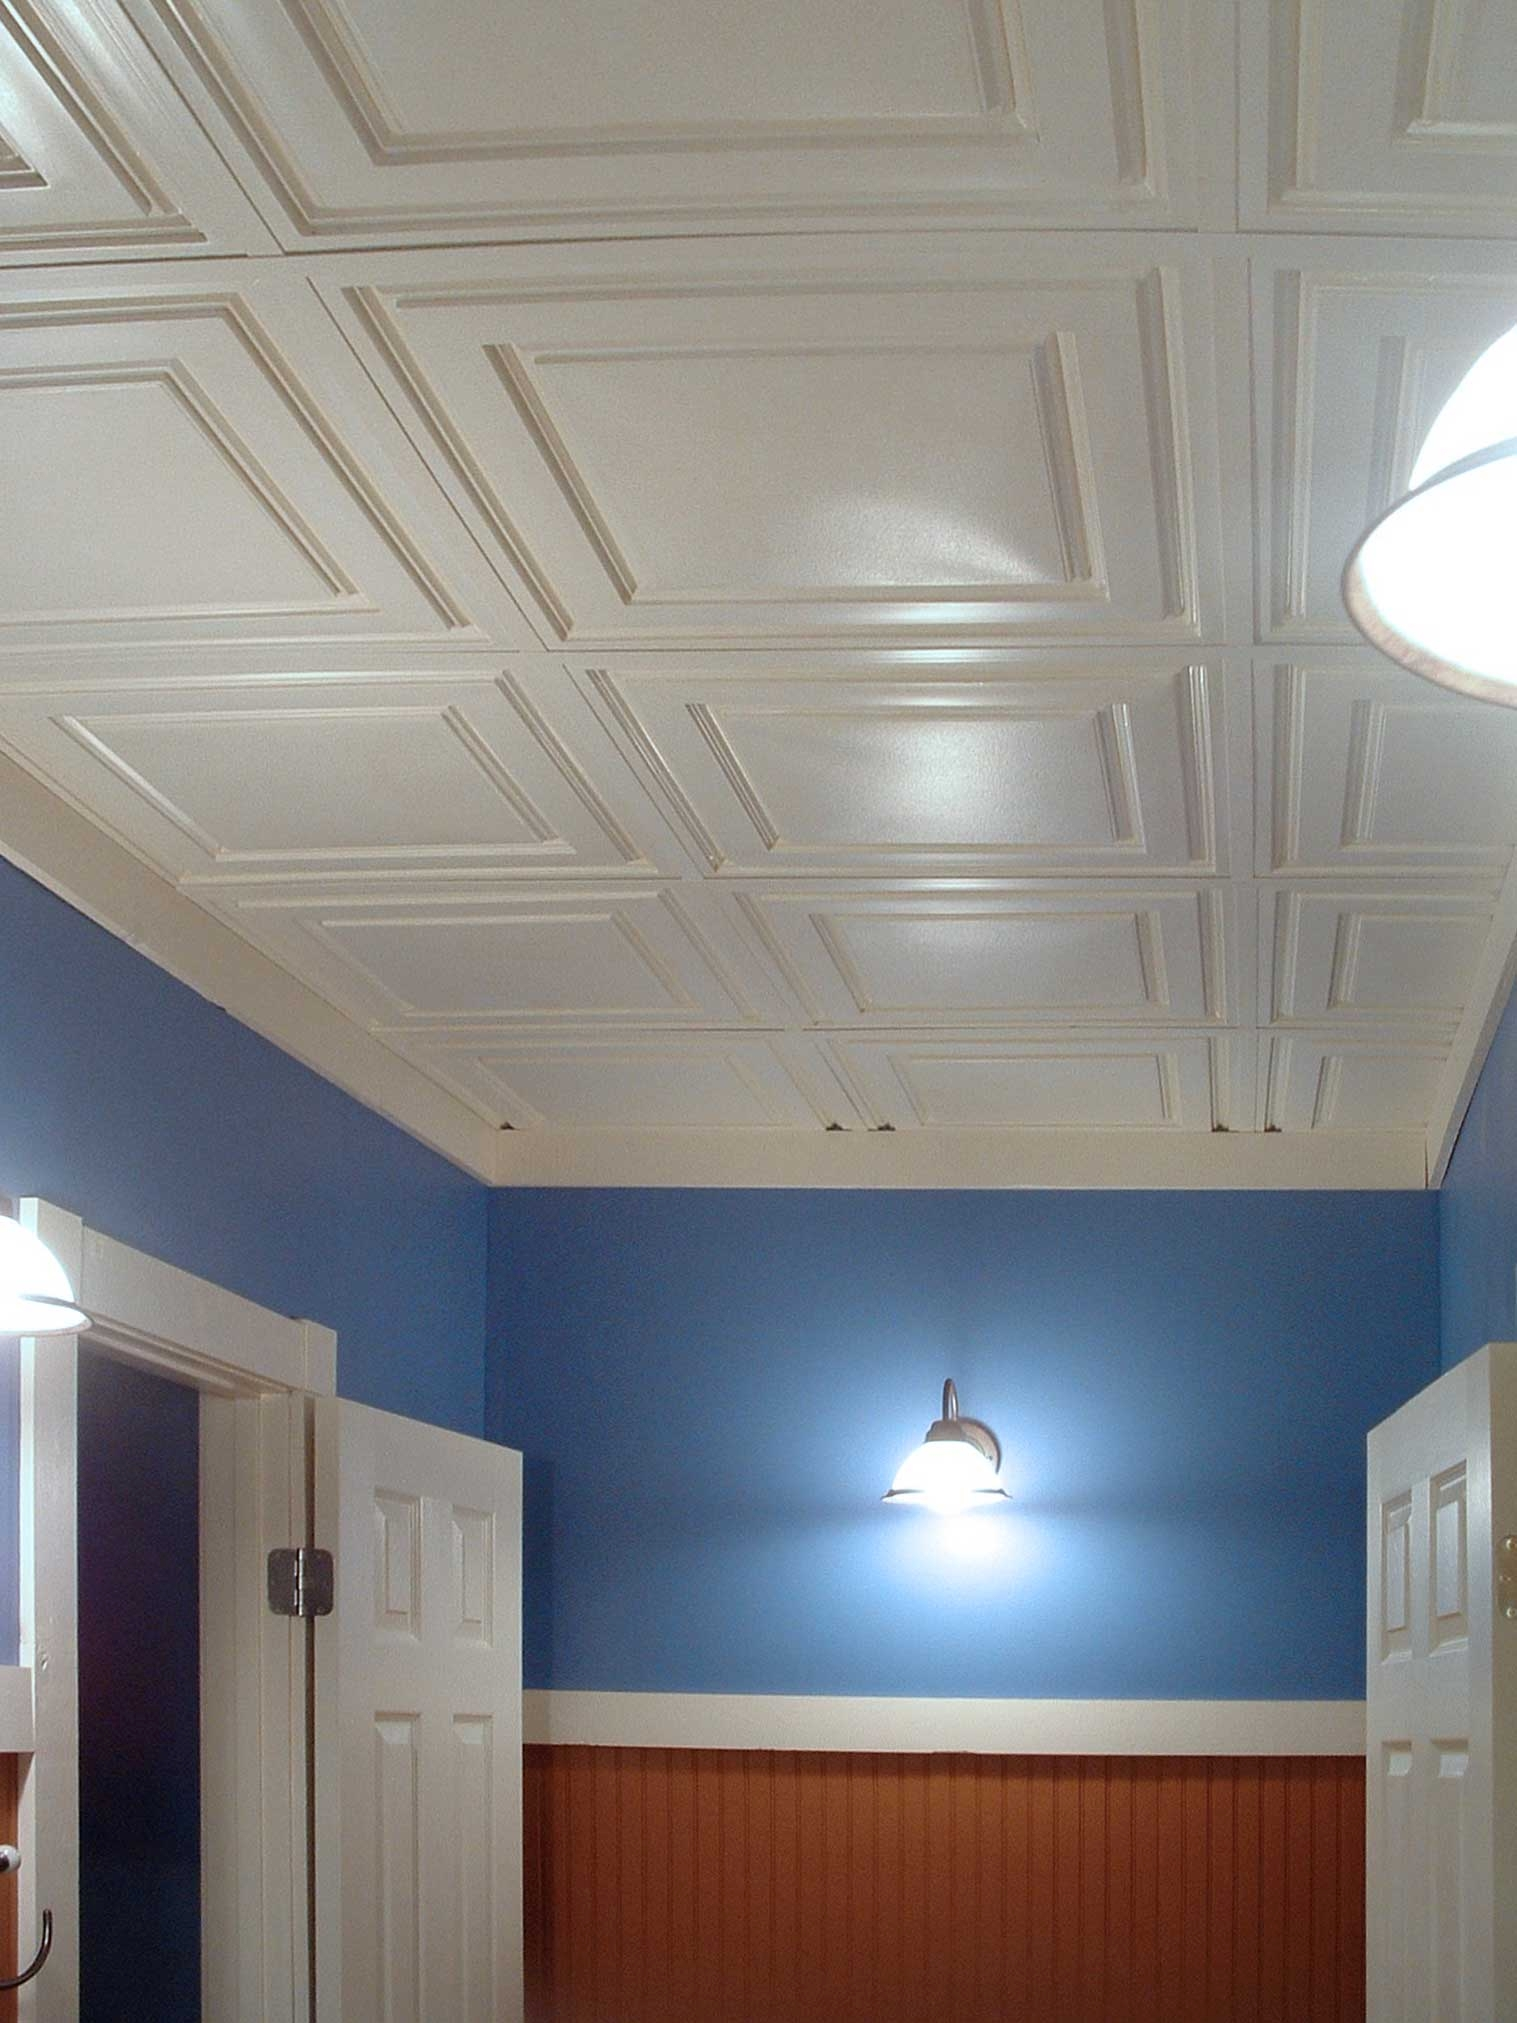 Painted ceiling tiles ceilume we went with the ceiling link grid system i know this is not your product but i thought id just share that next time i would go with one that locks dailygadgetfo Image collections